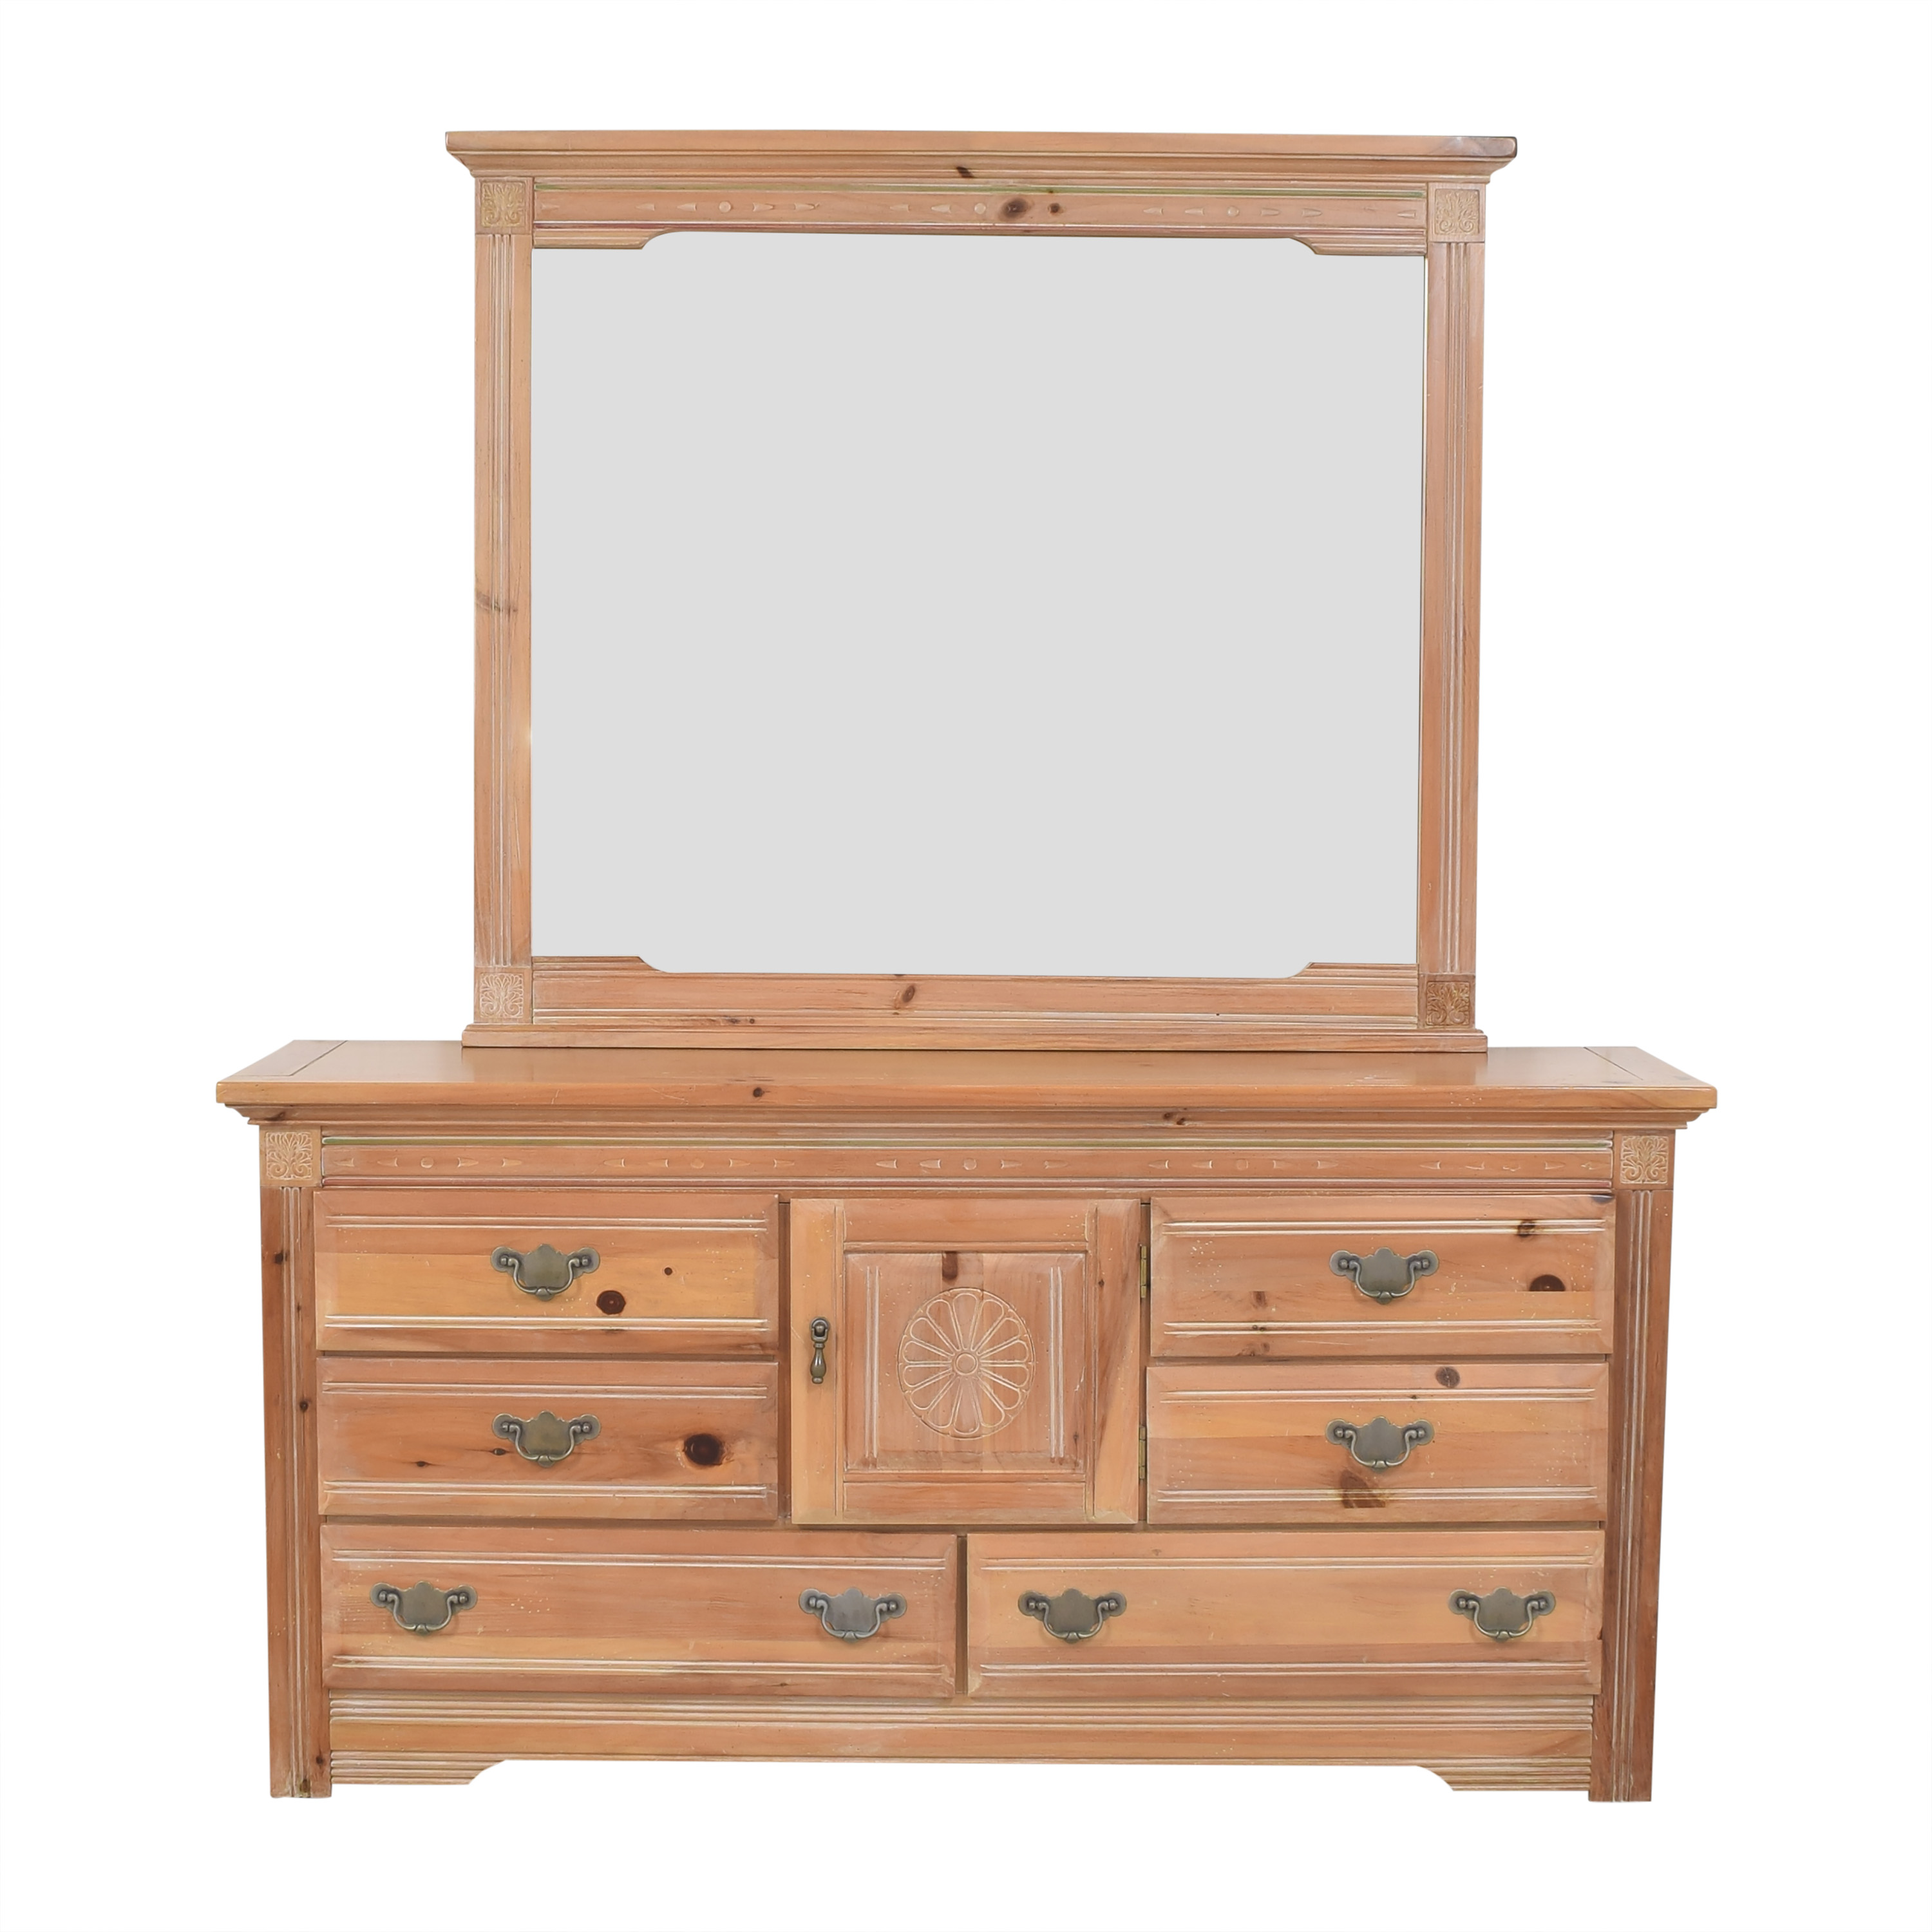 Vaughan Furniture Vaughan Furniture Door Dresser with Mirror nyc